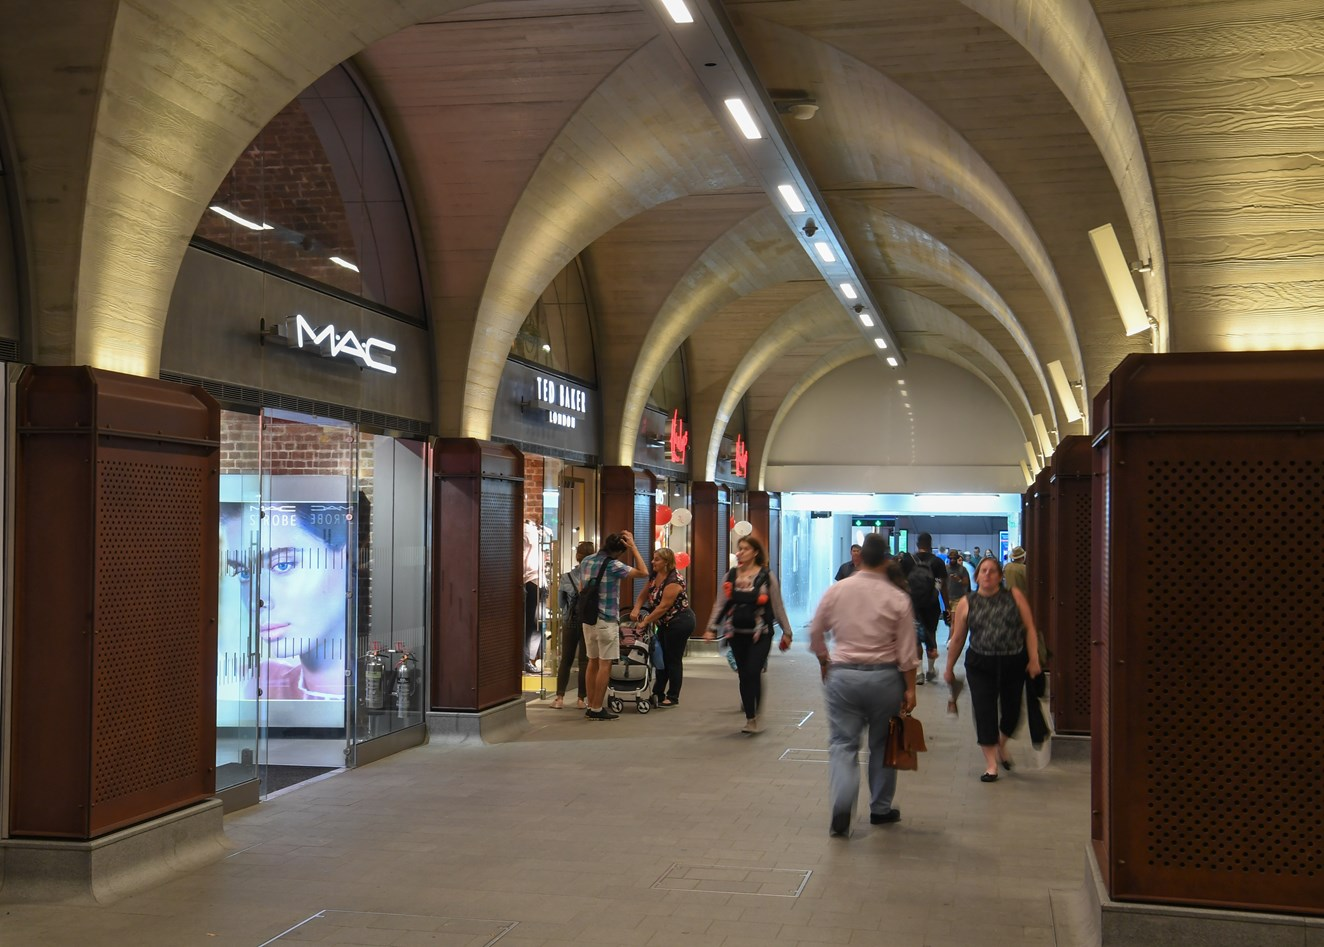 Passengers' need for convenience sparks growth in Christmas retail sales: New retailers in the Western Arcade at London Bridge station